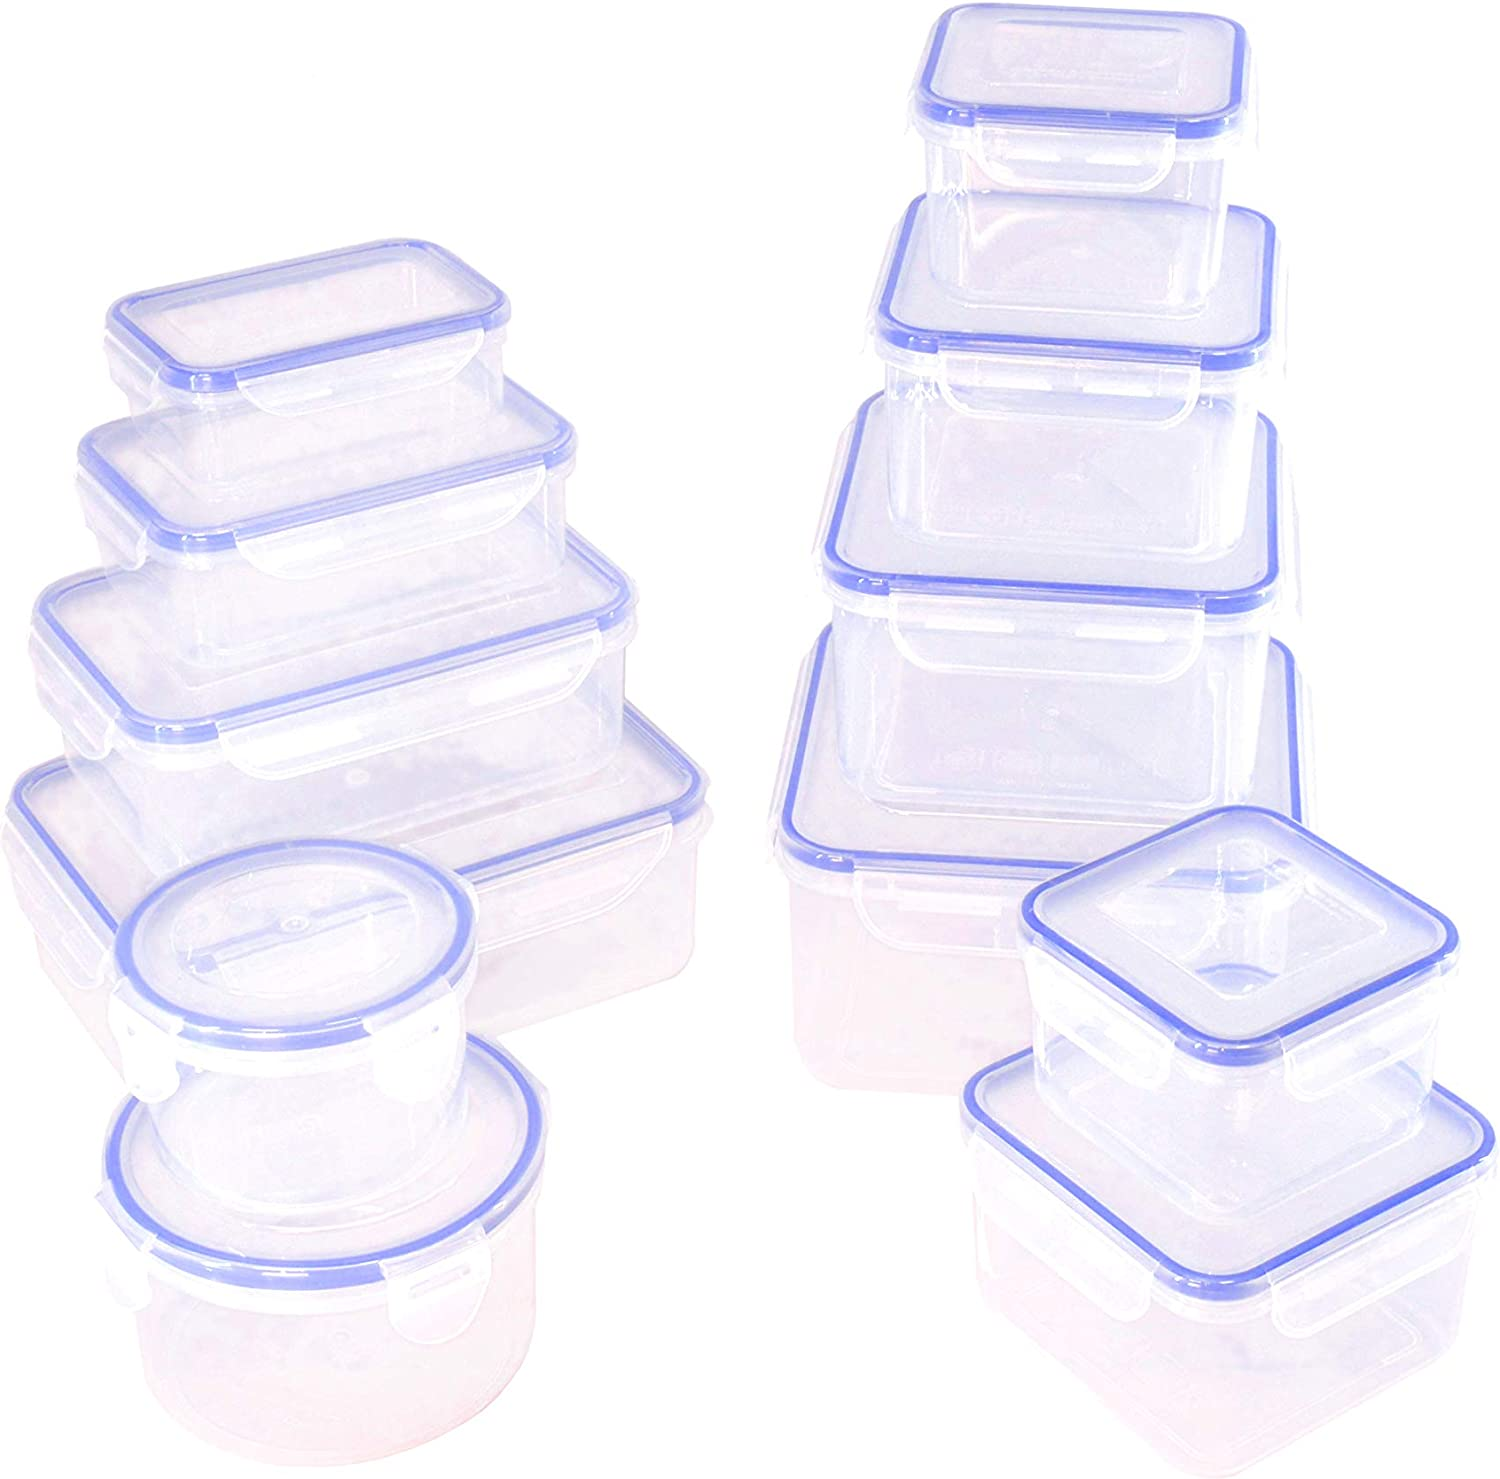 12 pcs Food Storage Containers with Lids @ Airtight Leak Proof Easy Snap Lock and BPA-Free Plastic Container Set @ Plastic Food Containers with Lids @ Plastic Containers with Lids (Blue)